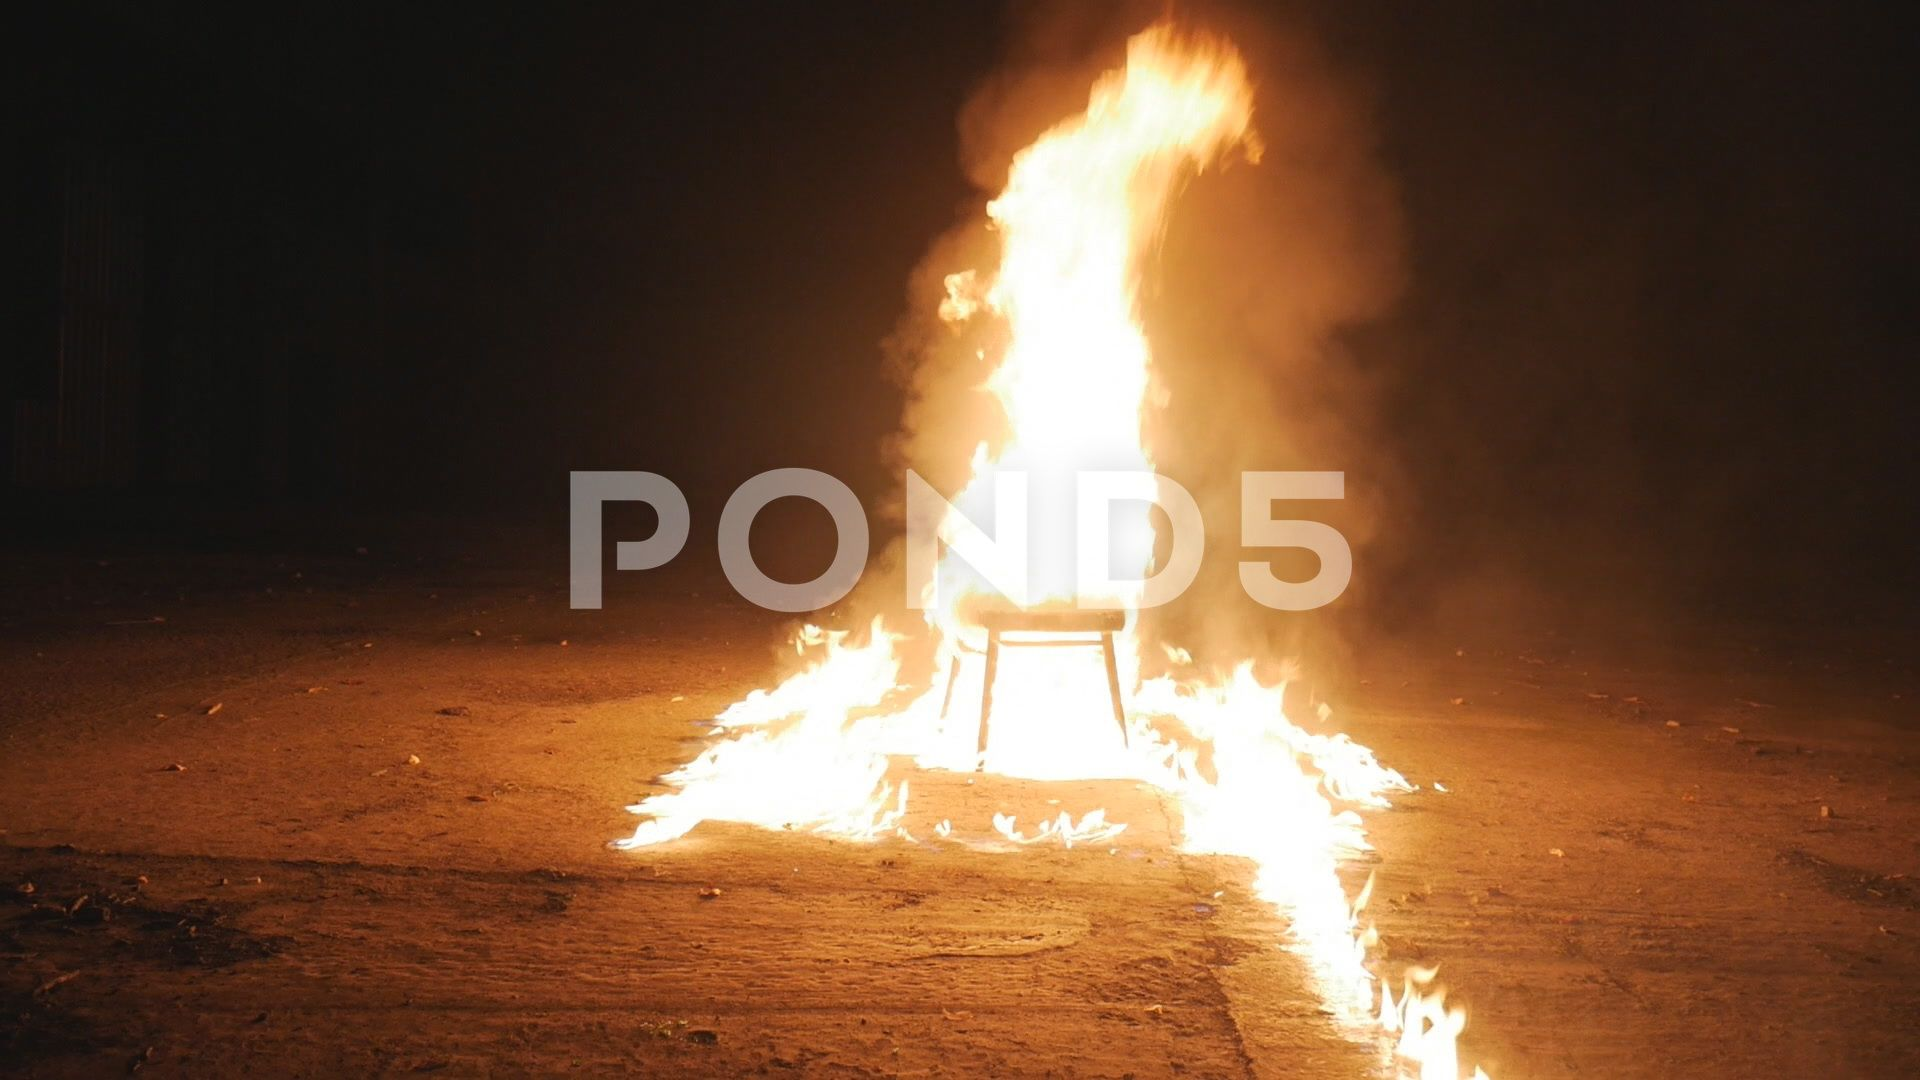 The Chair Lights Up In The Fire Stock Footage Ad Lights Chair Fire Footage In 2020 Fire Stock Stock Footage Stock Video